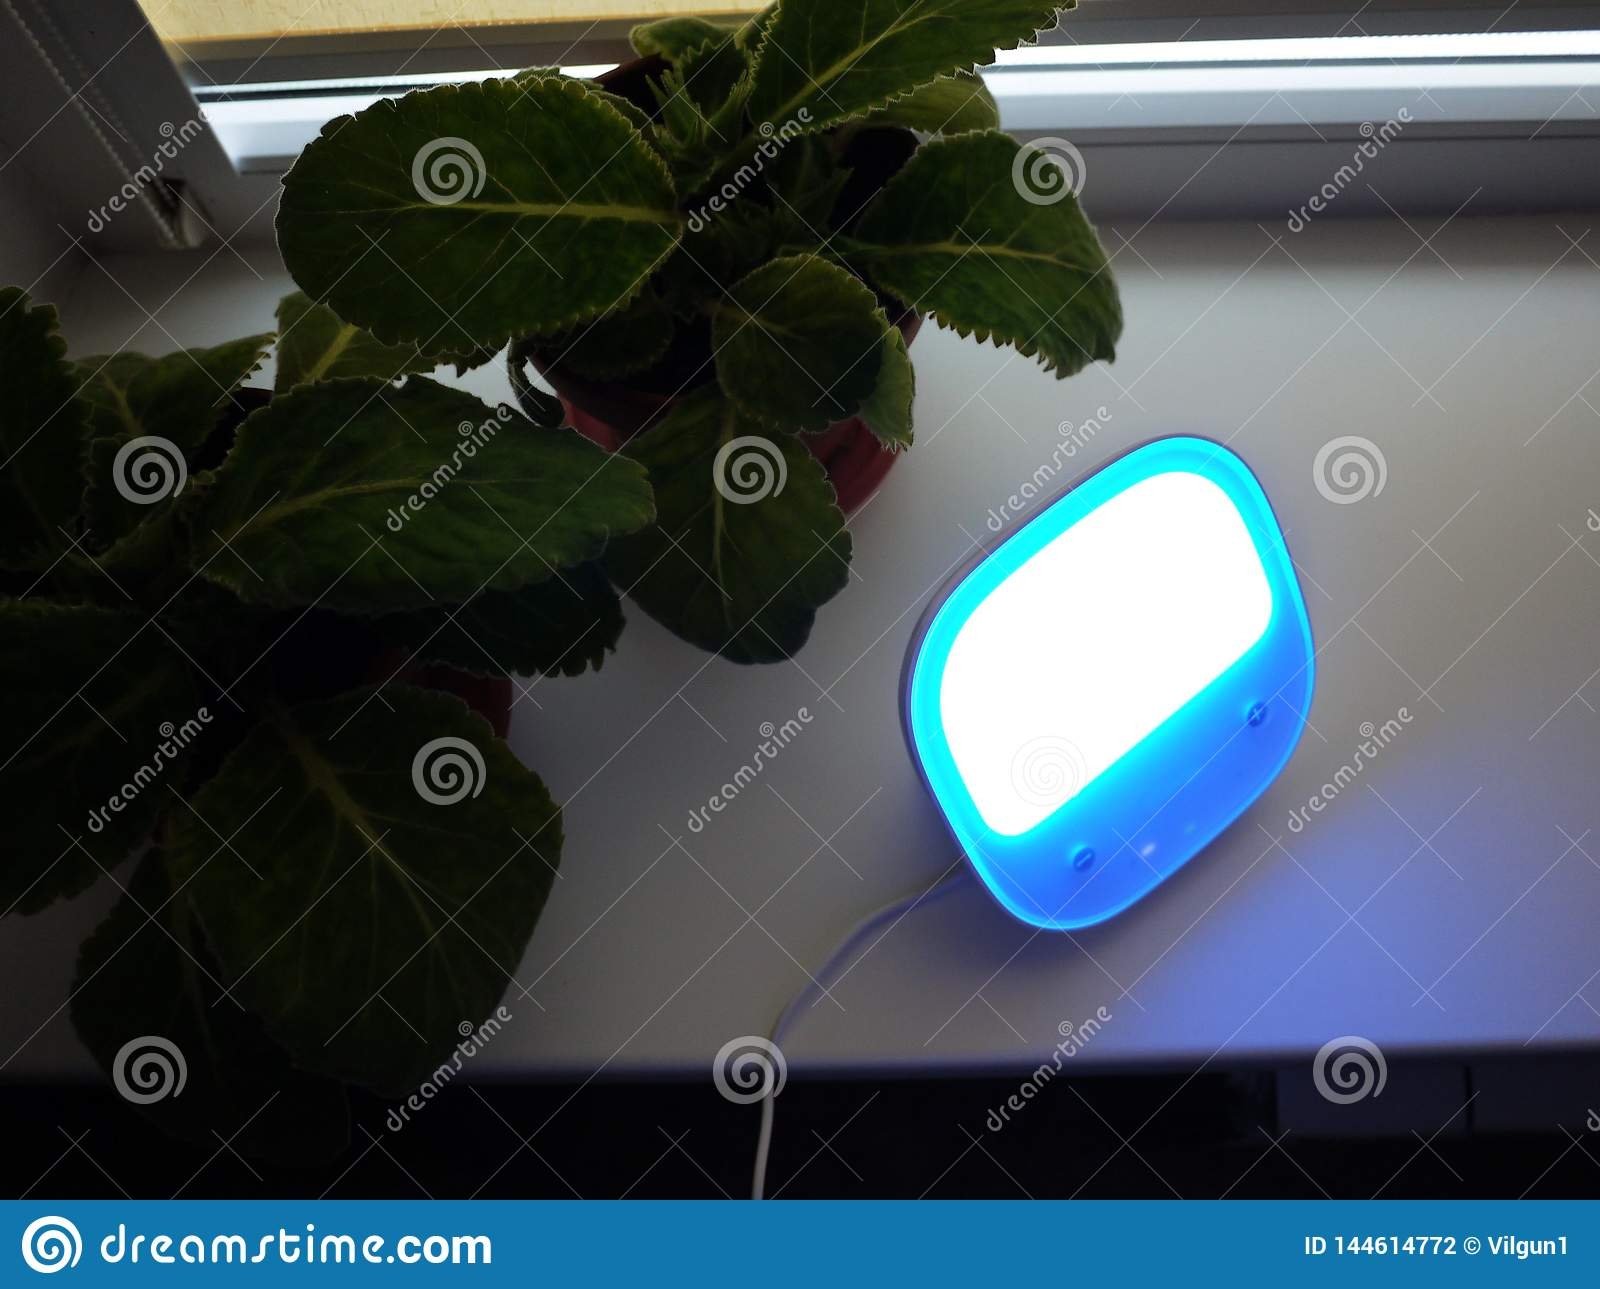 Table lamp at home. Used for lighting of various surfaces, the LED light bulbs. ..